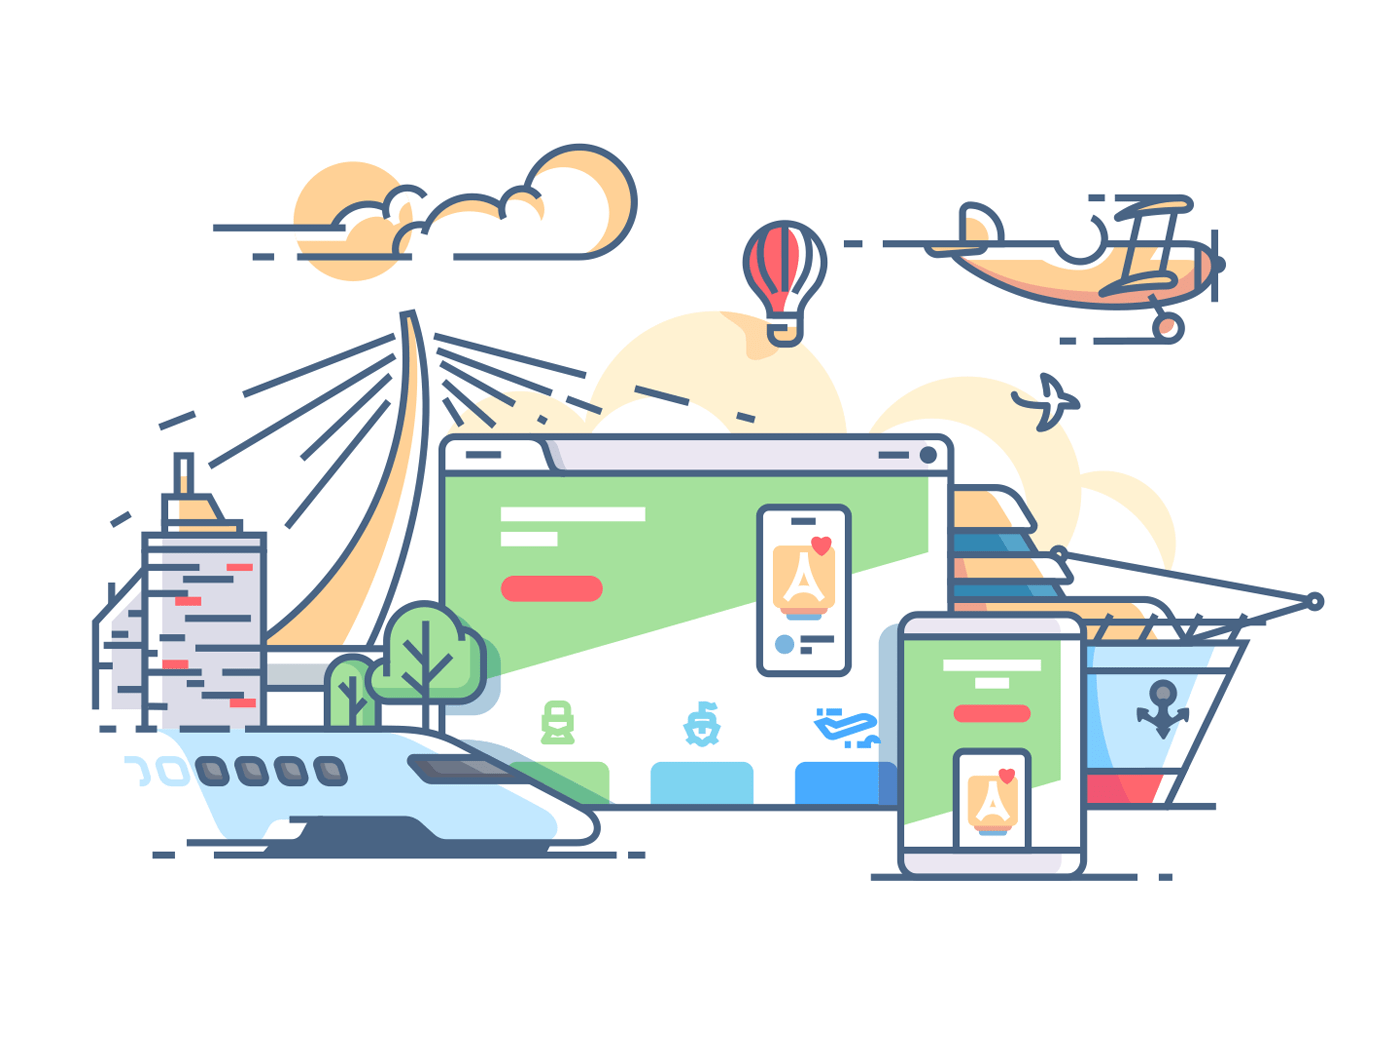 Site travel agency. Planning recreation or holiday. Vector flat illustration